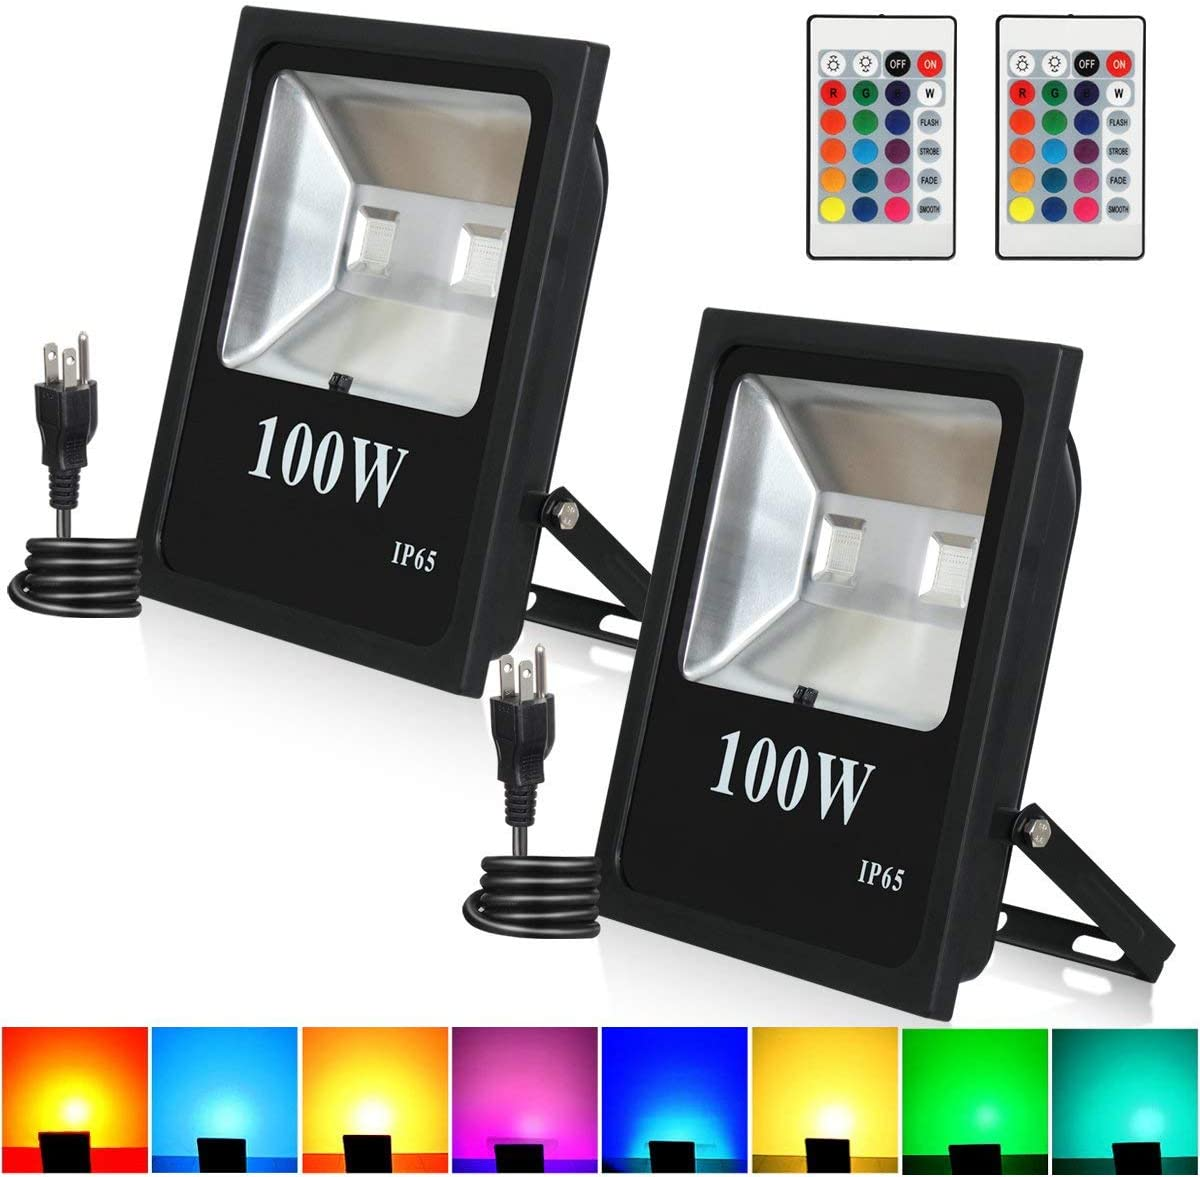 100W RGB LED Flood Lights, T-Sunrise Outdoor Color Changing Floodlight with Remote Control, IP65 Waterproof 16 Colors 4 Modes Wall Washer Light, Stage Lighting with US 3-Plug 2 Pack